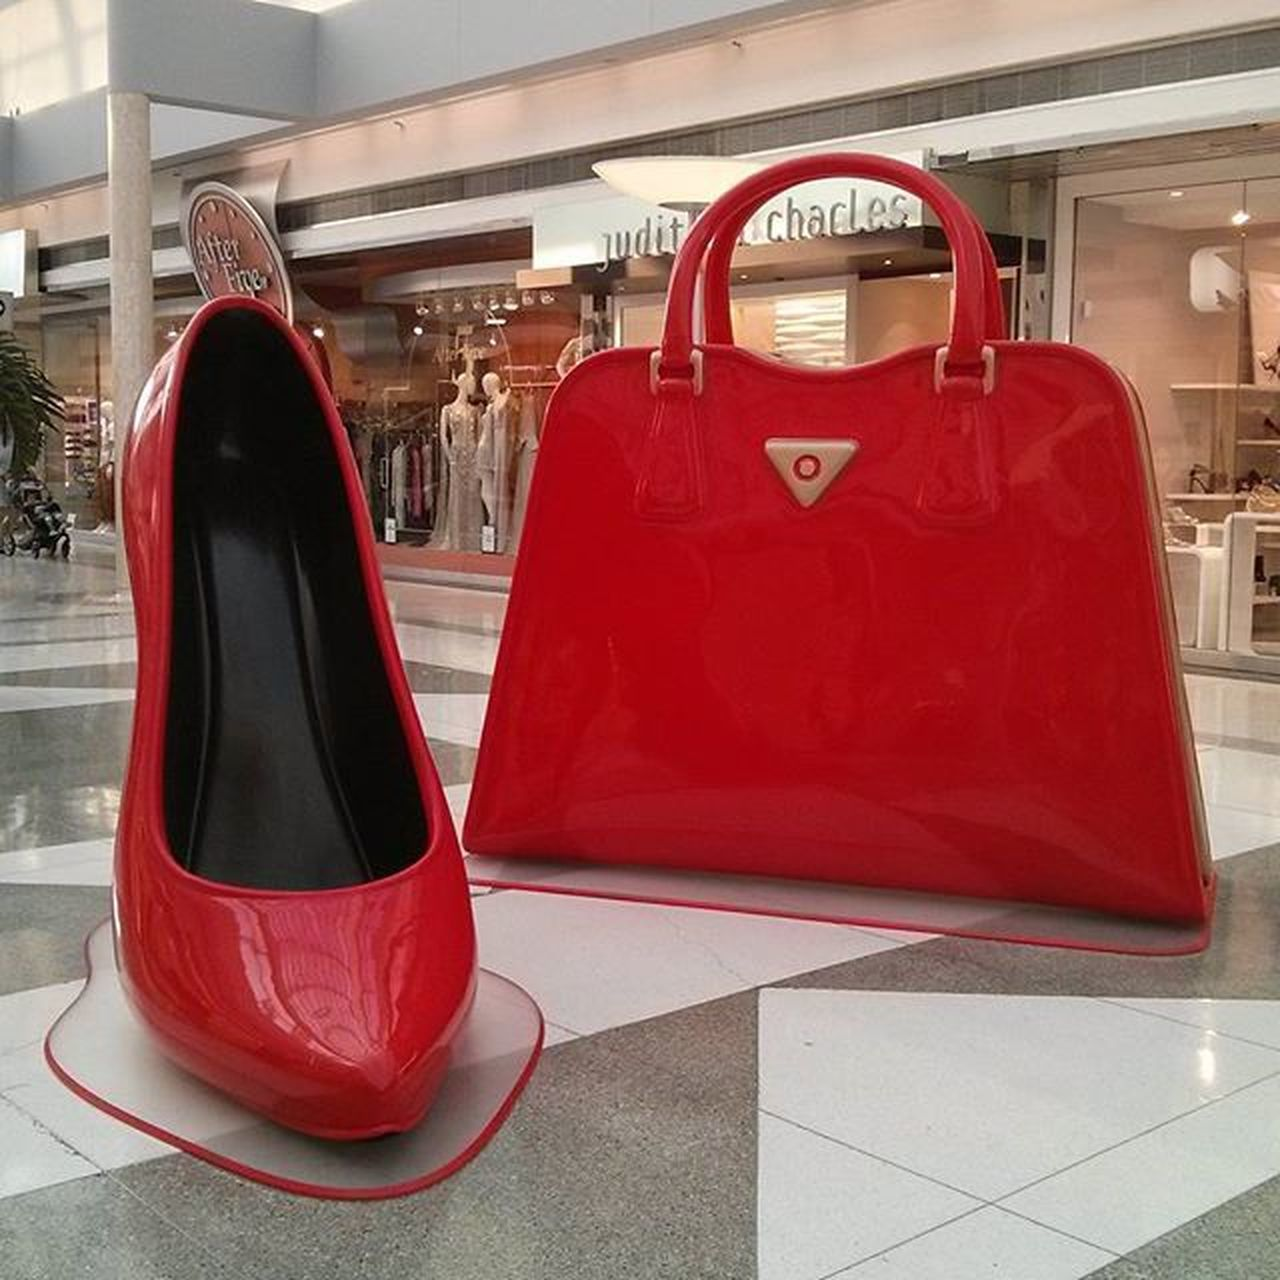 Purses and shoes, every girl's first loves! Found these huge displays in the middle of the mall today. For a good cause to Dress for Success Vancouver Dressoakridge Youtube Youtuber FashionablyAmy luxury fashion handbags shoes luxuryitem